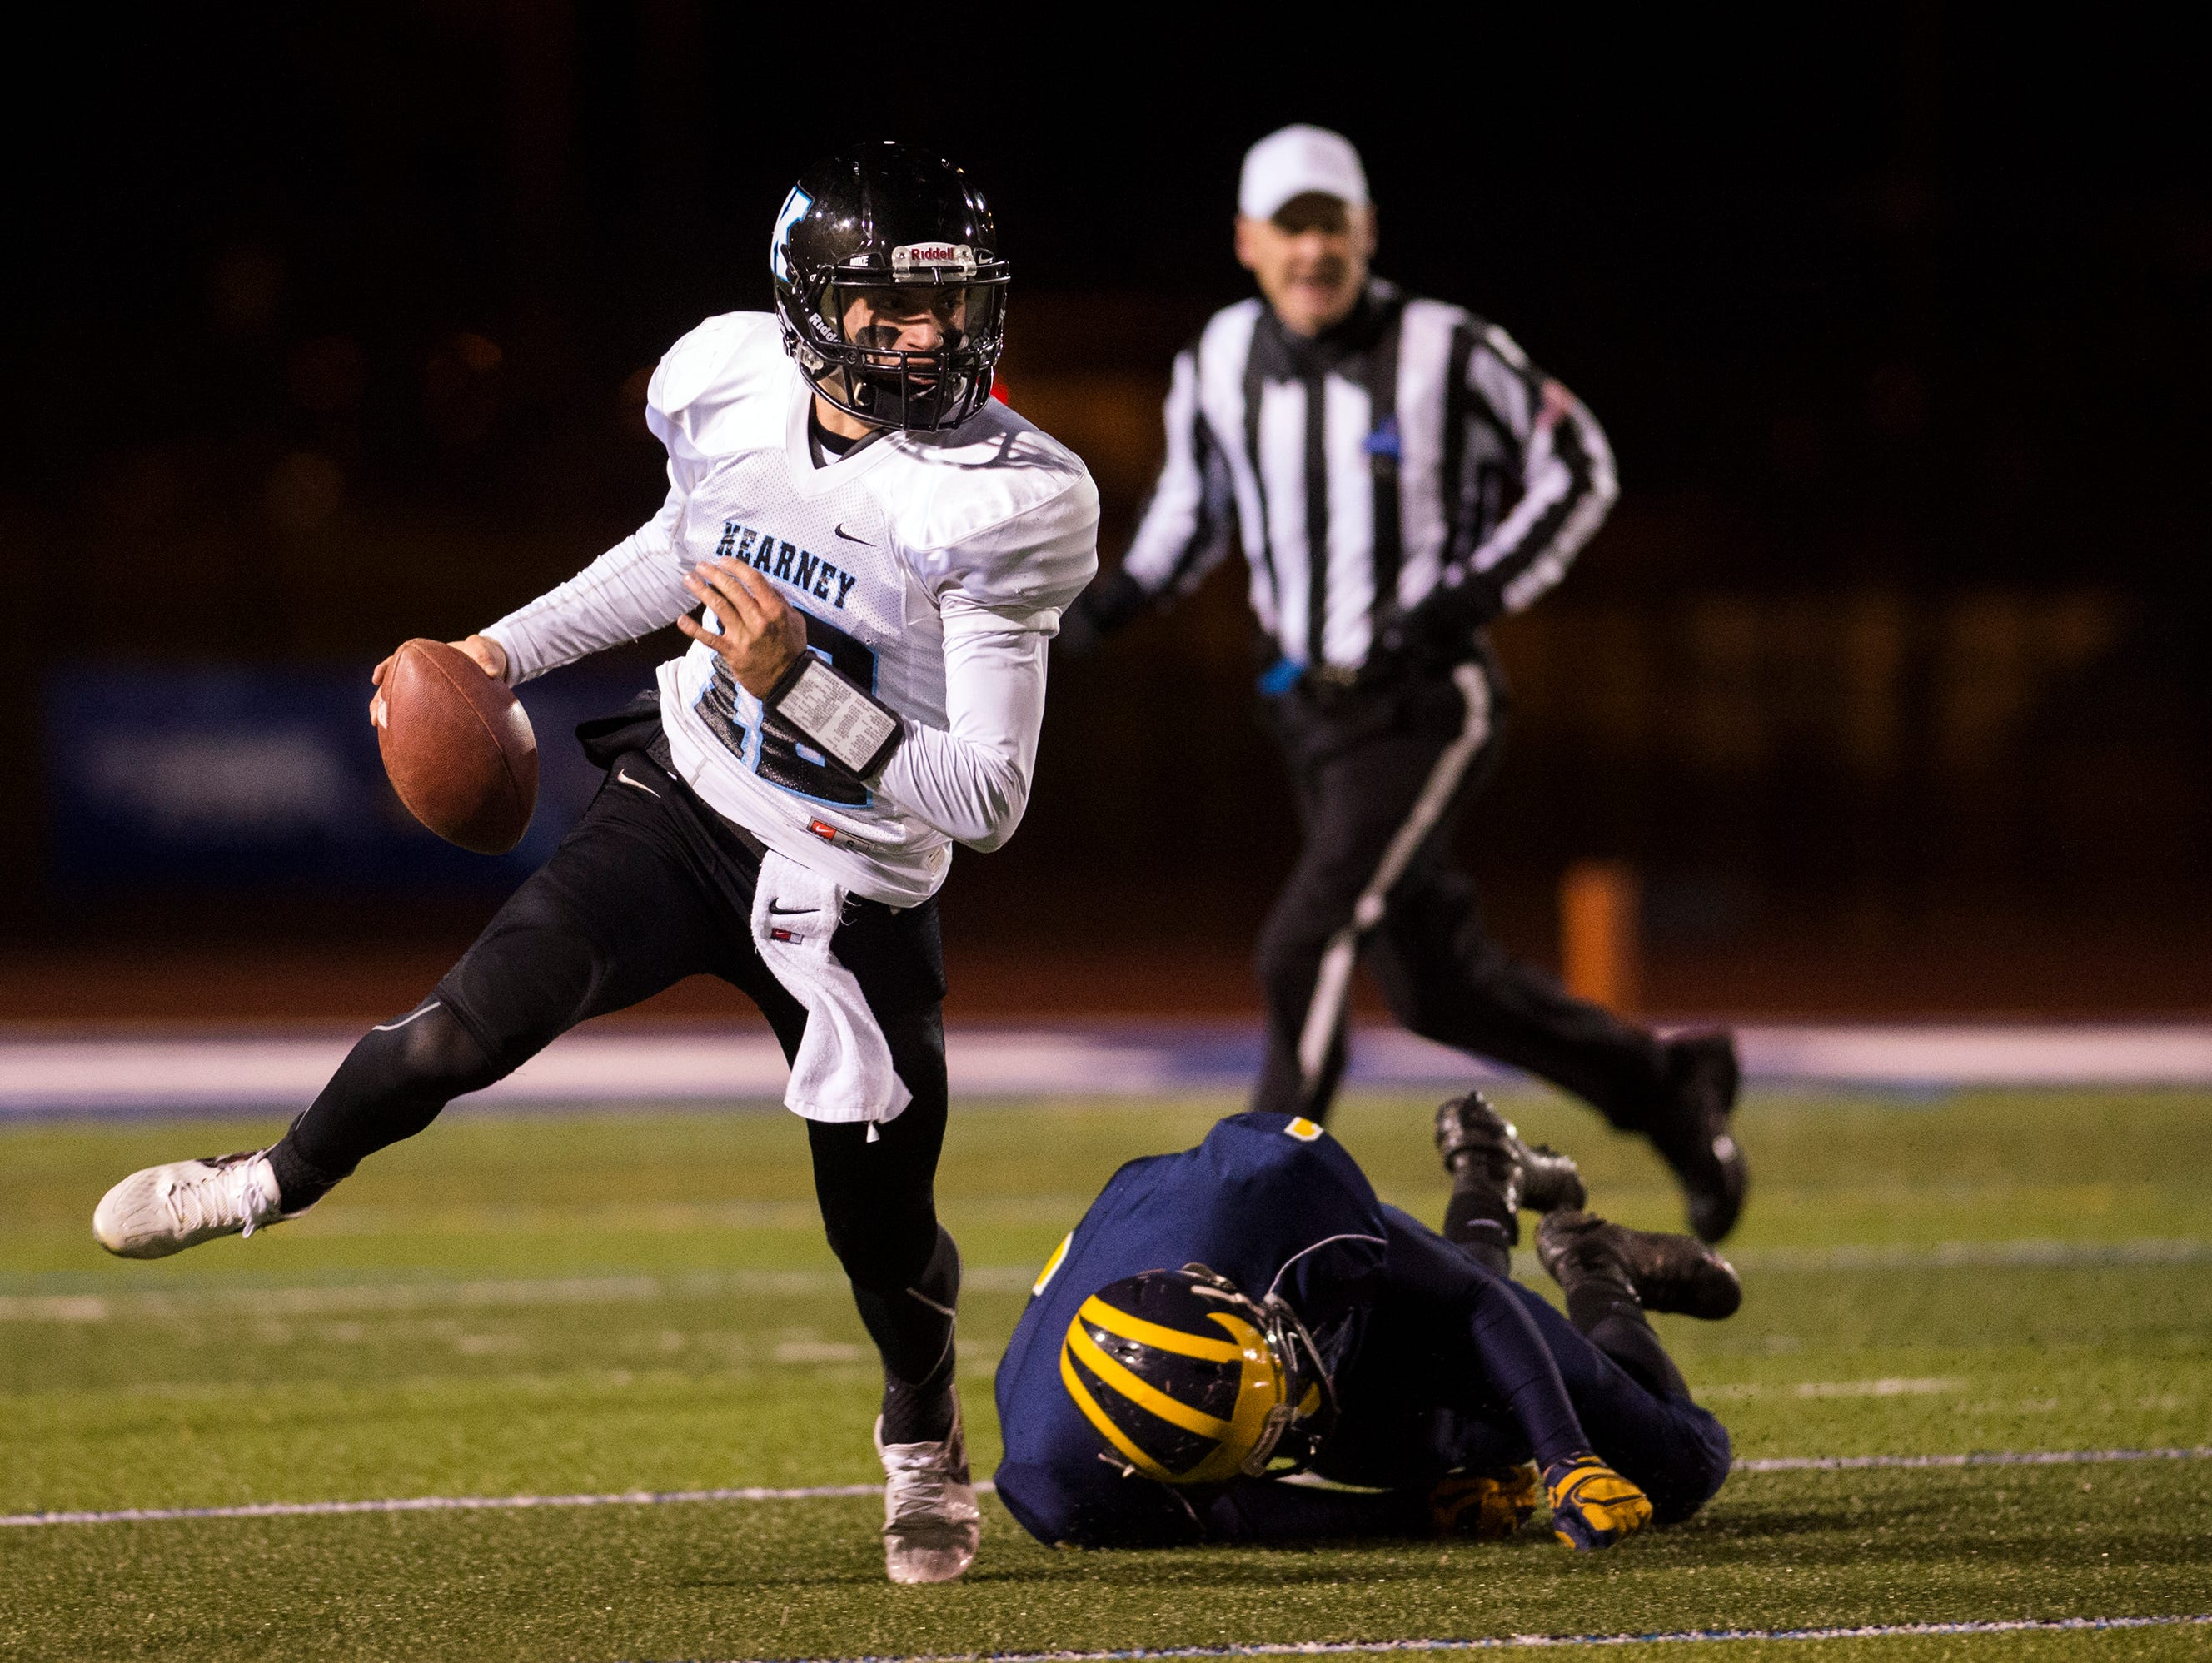 Bishop Kearney quarterback Todd LaRocca eludes a defender during the first quarter against Tioga in the Class D state playoff semifinals at Cicero-North in Syracuse on Friday, Nov. 20, 2015.